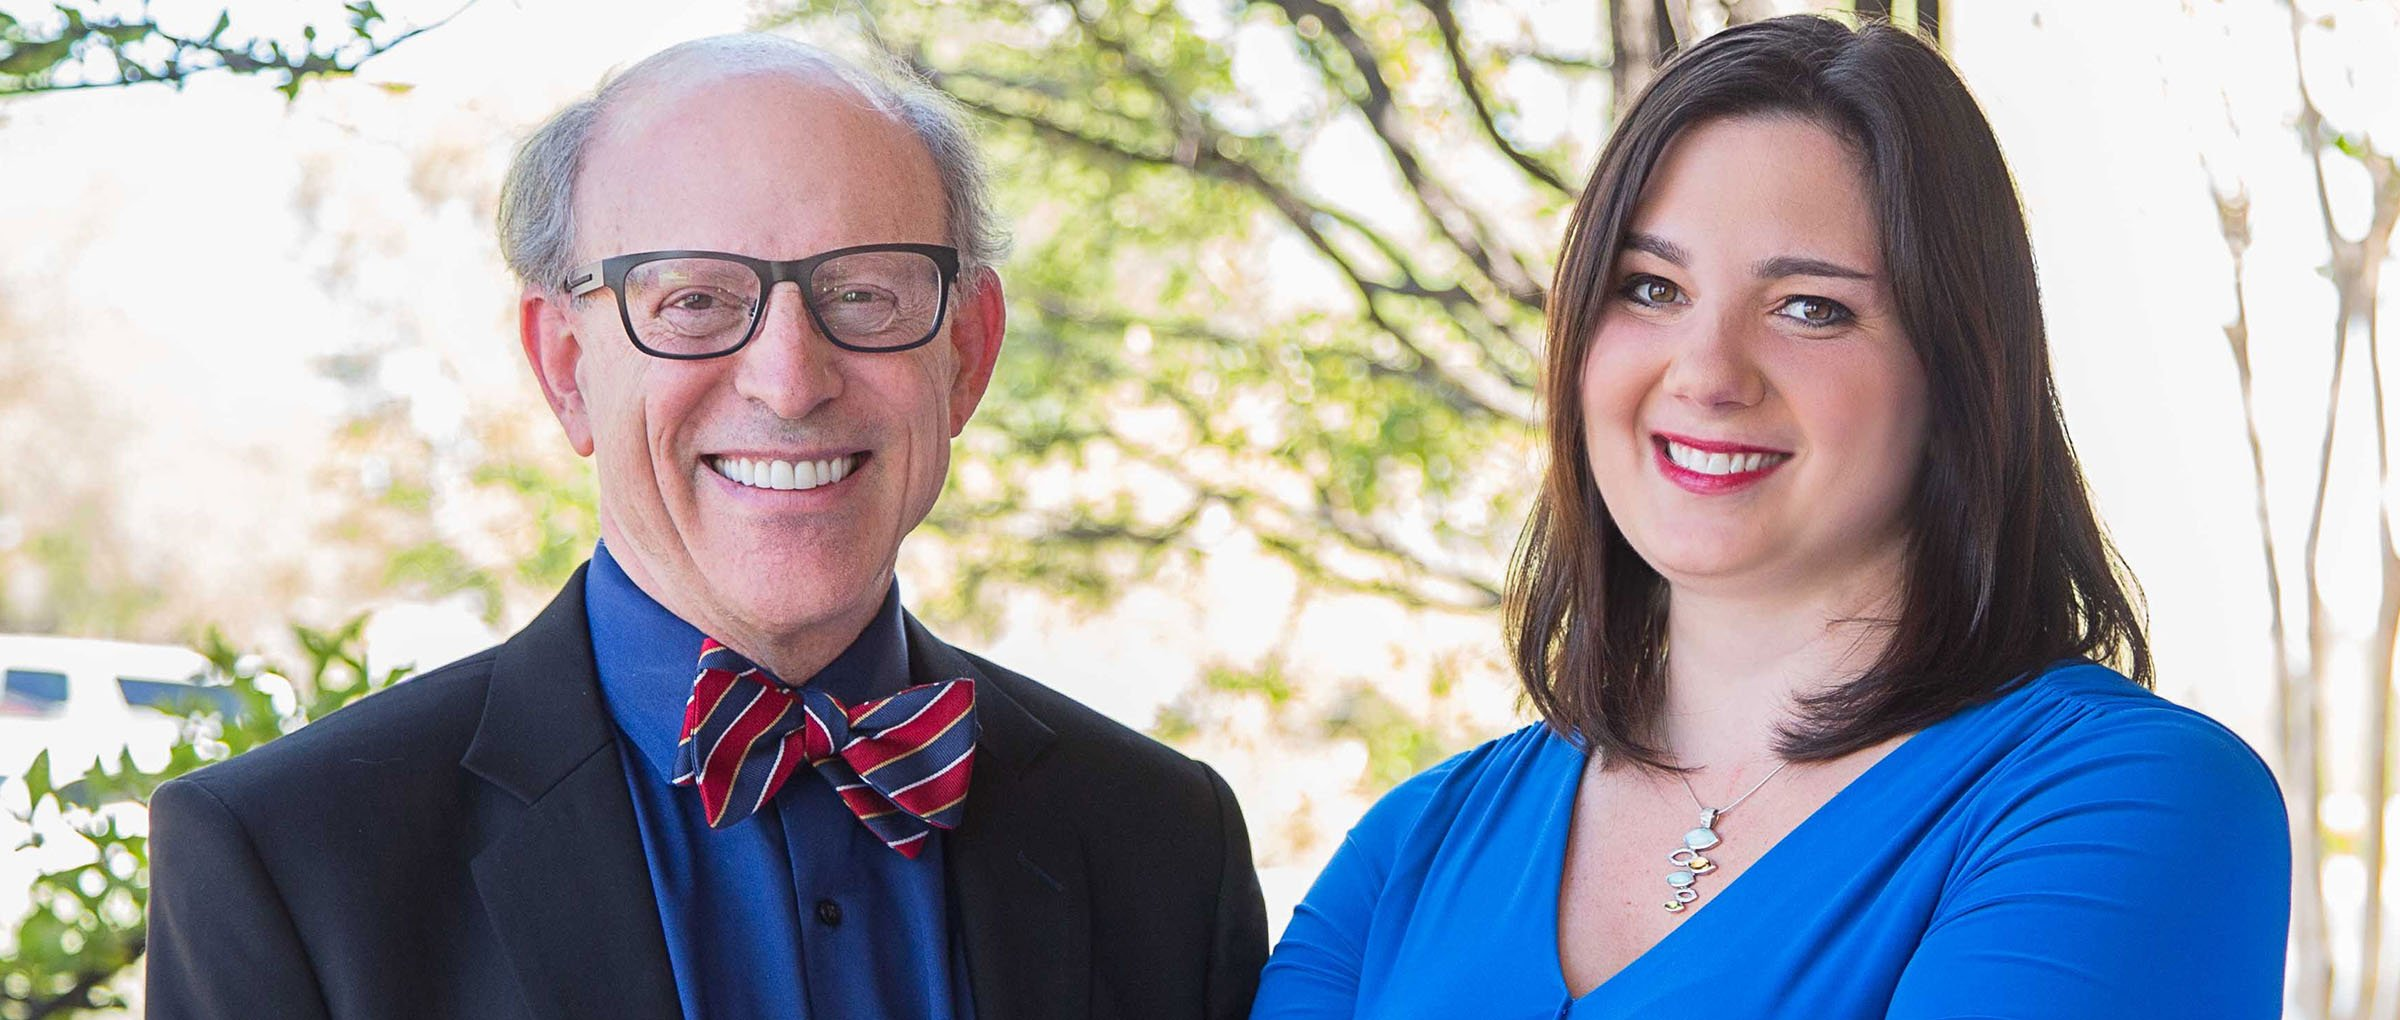 Doctors Bruce Shapiro and Carrie Bedient The Fertility Center of Las Vegas